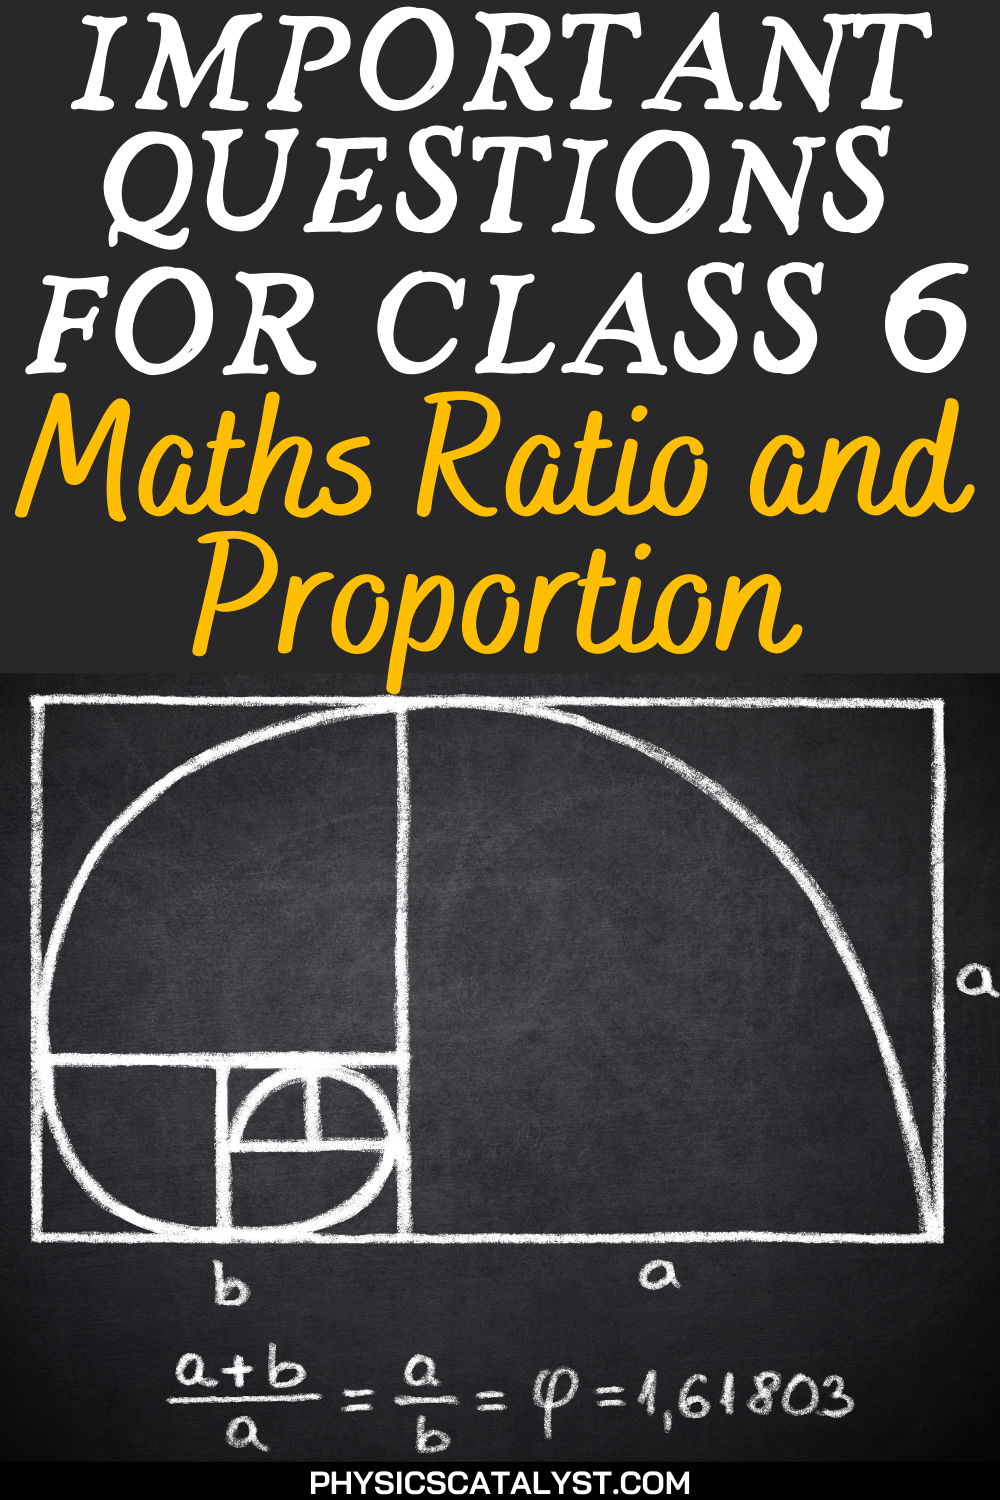 Ratio And Proportion Worksheets Ratios And Proportions This Or That Questions Class 6 Maths